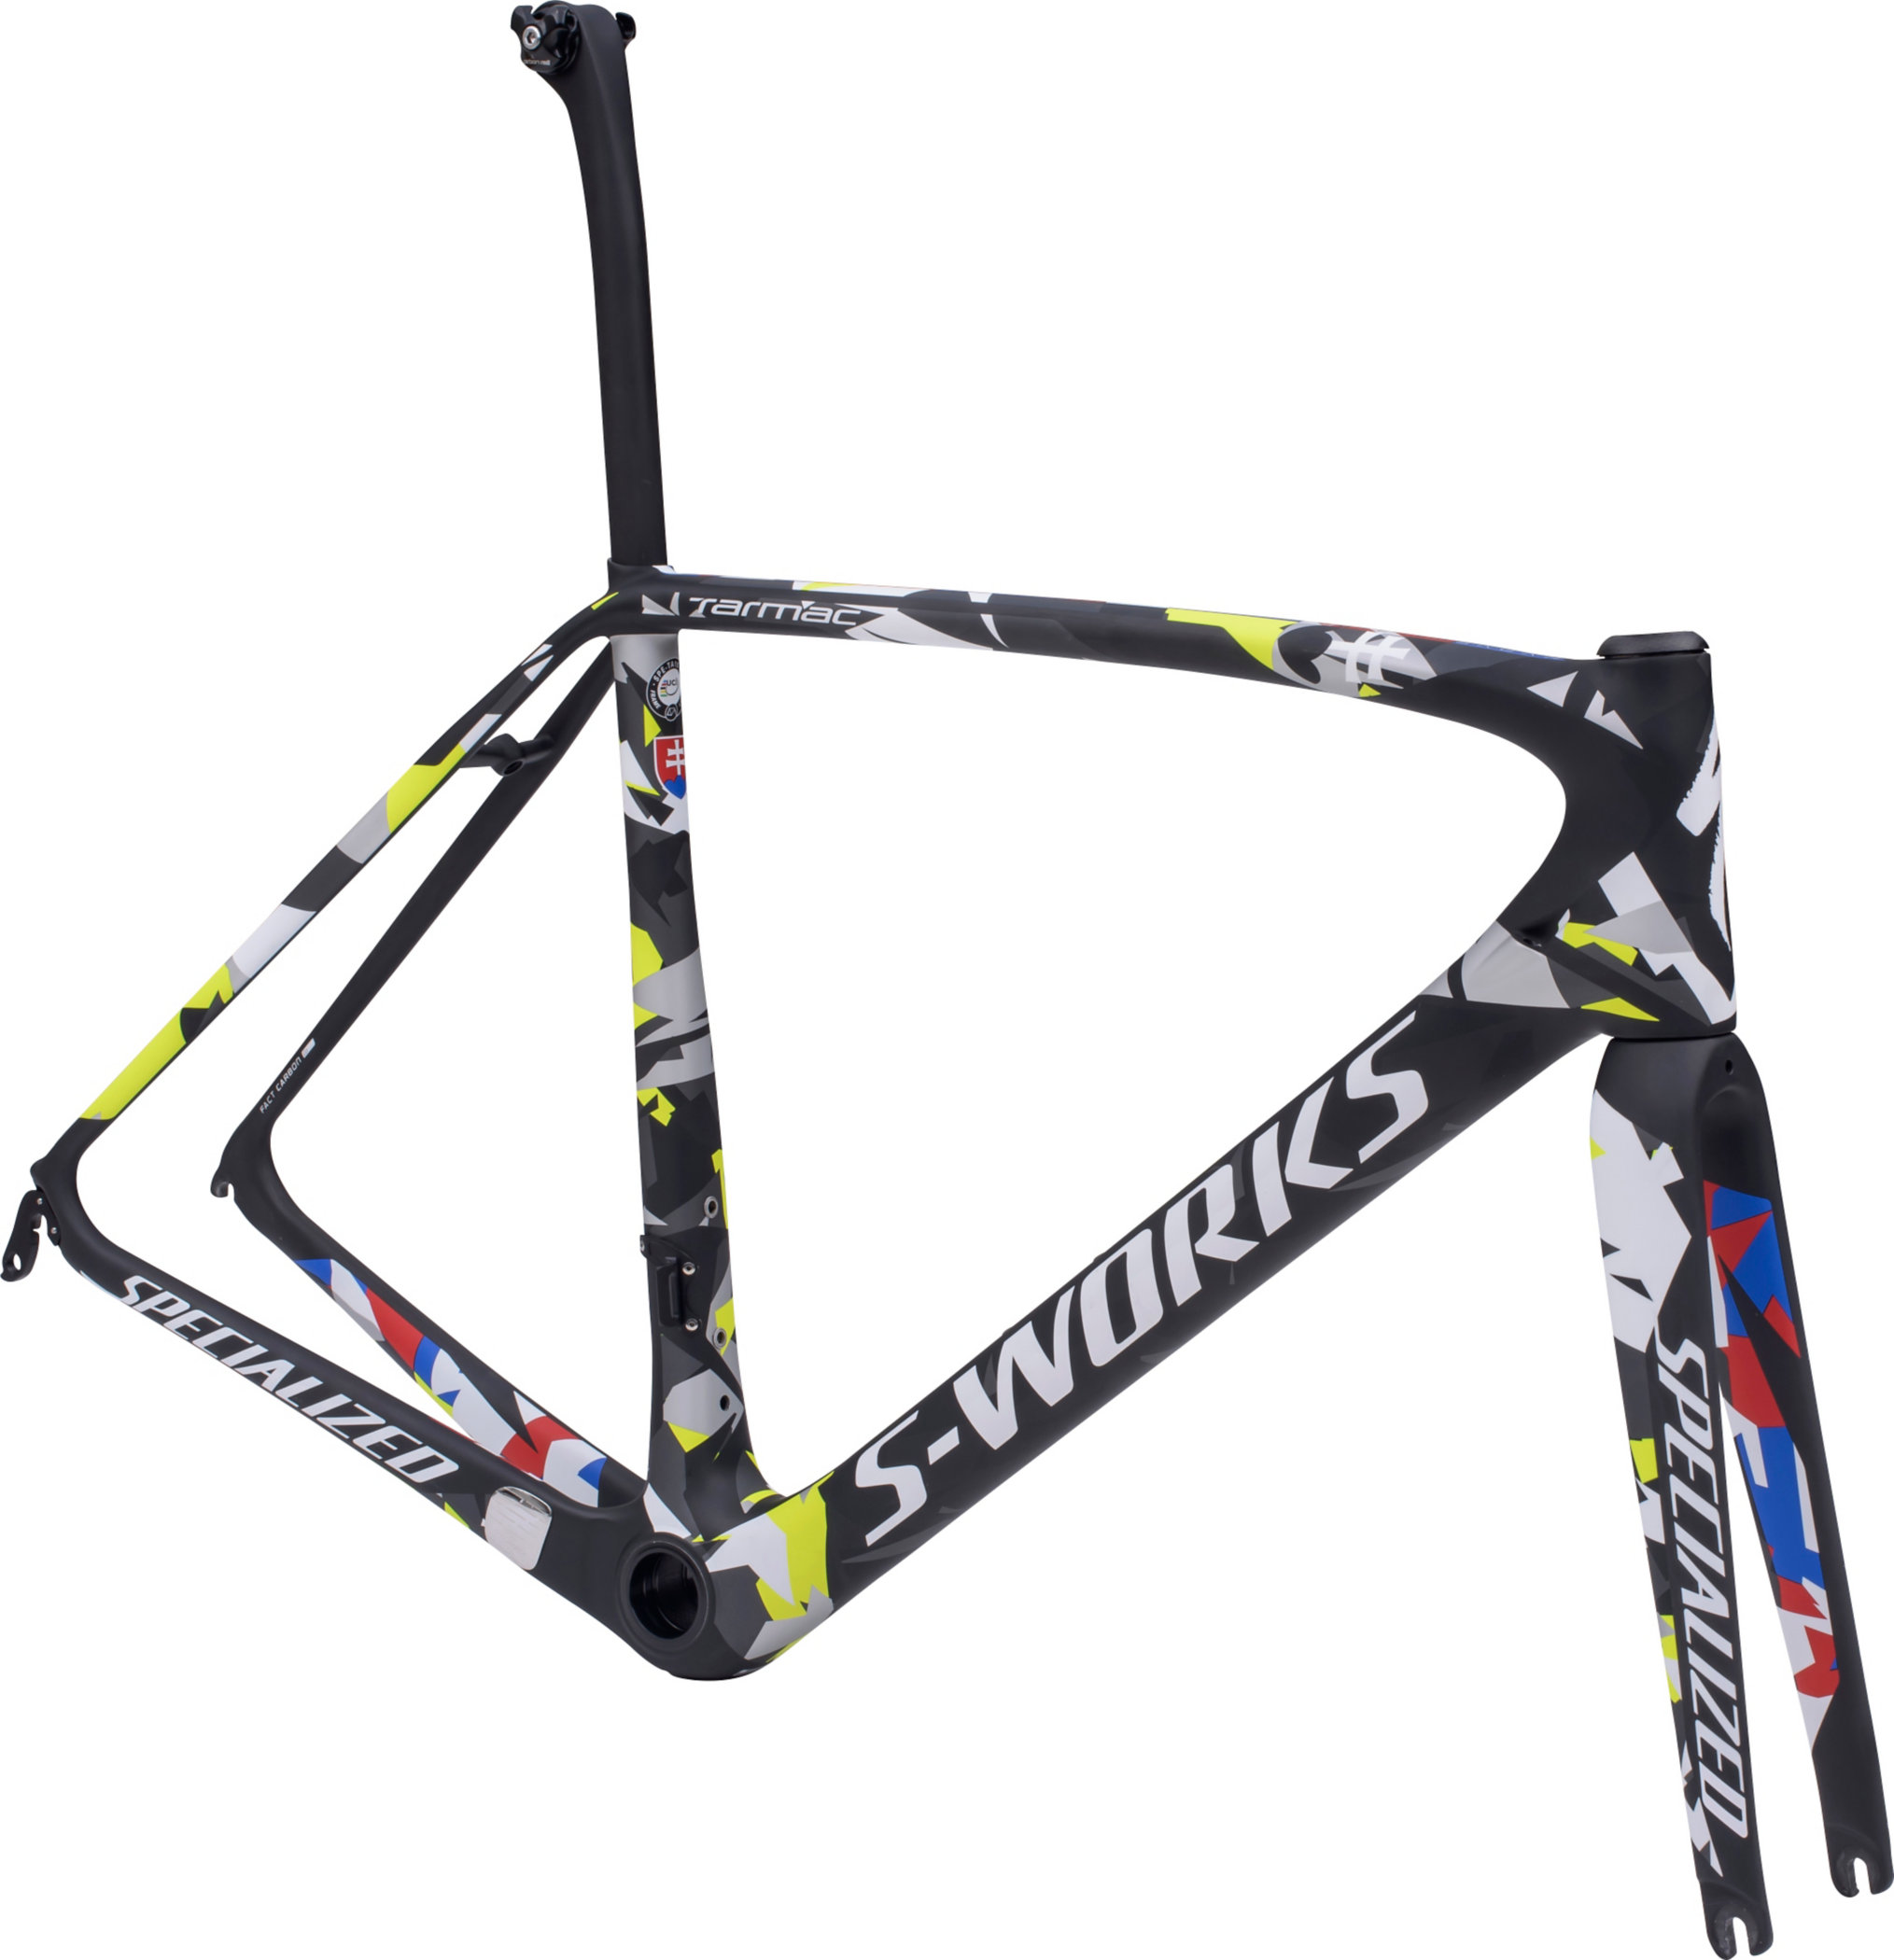 Cuadros Specialized Cuadro S Works Tarmac Replica Sagan Specialized